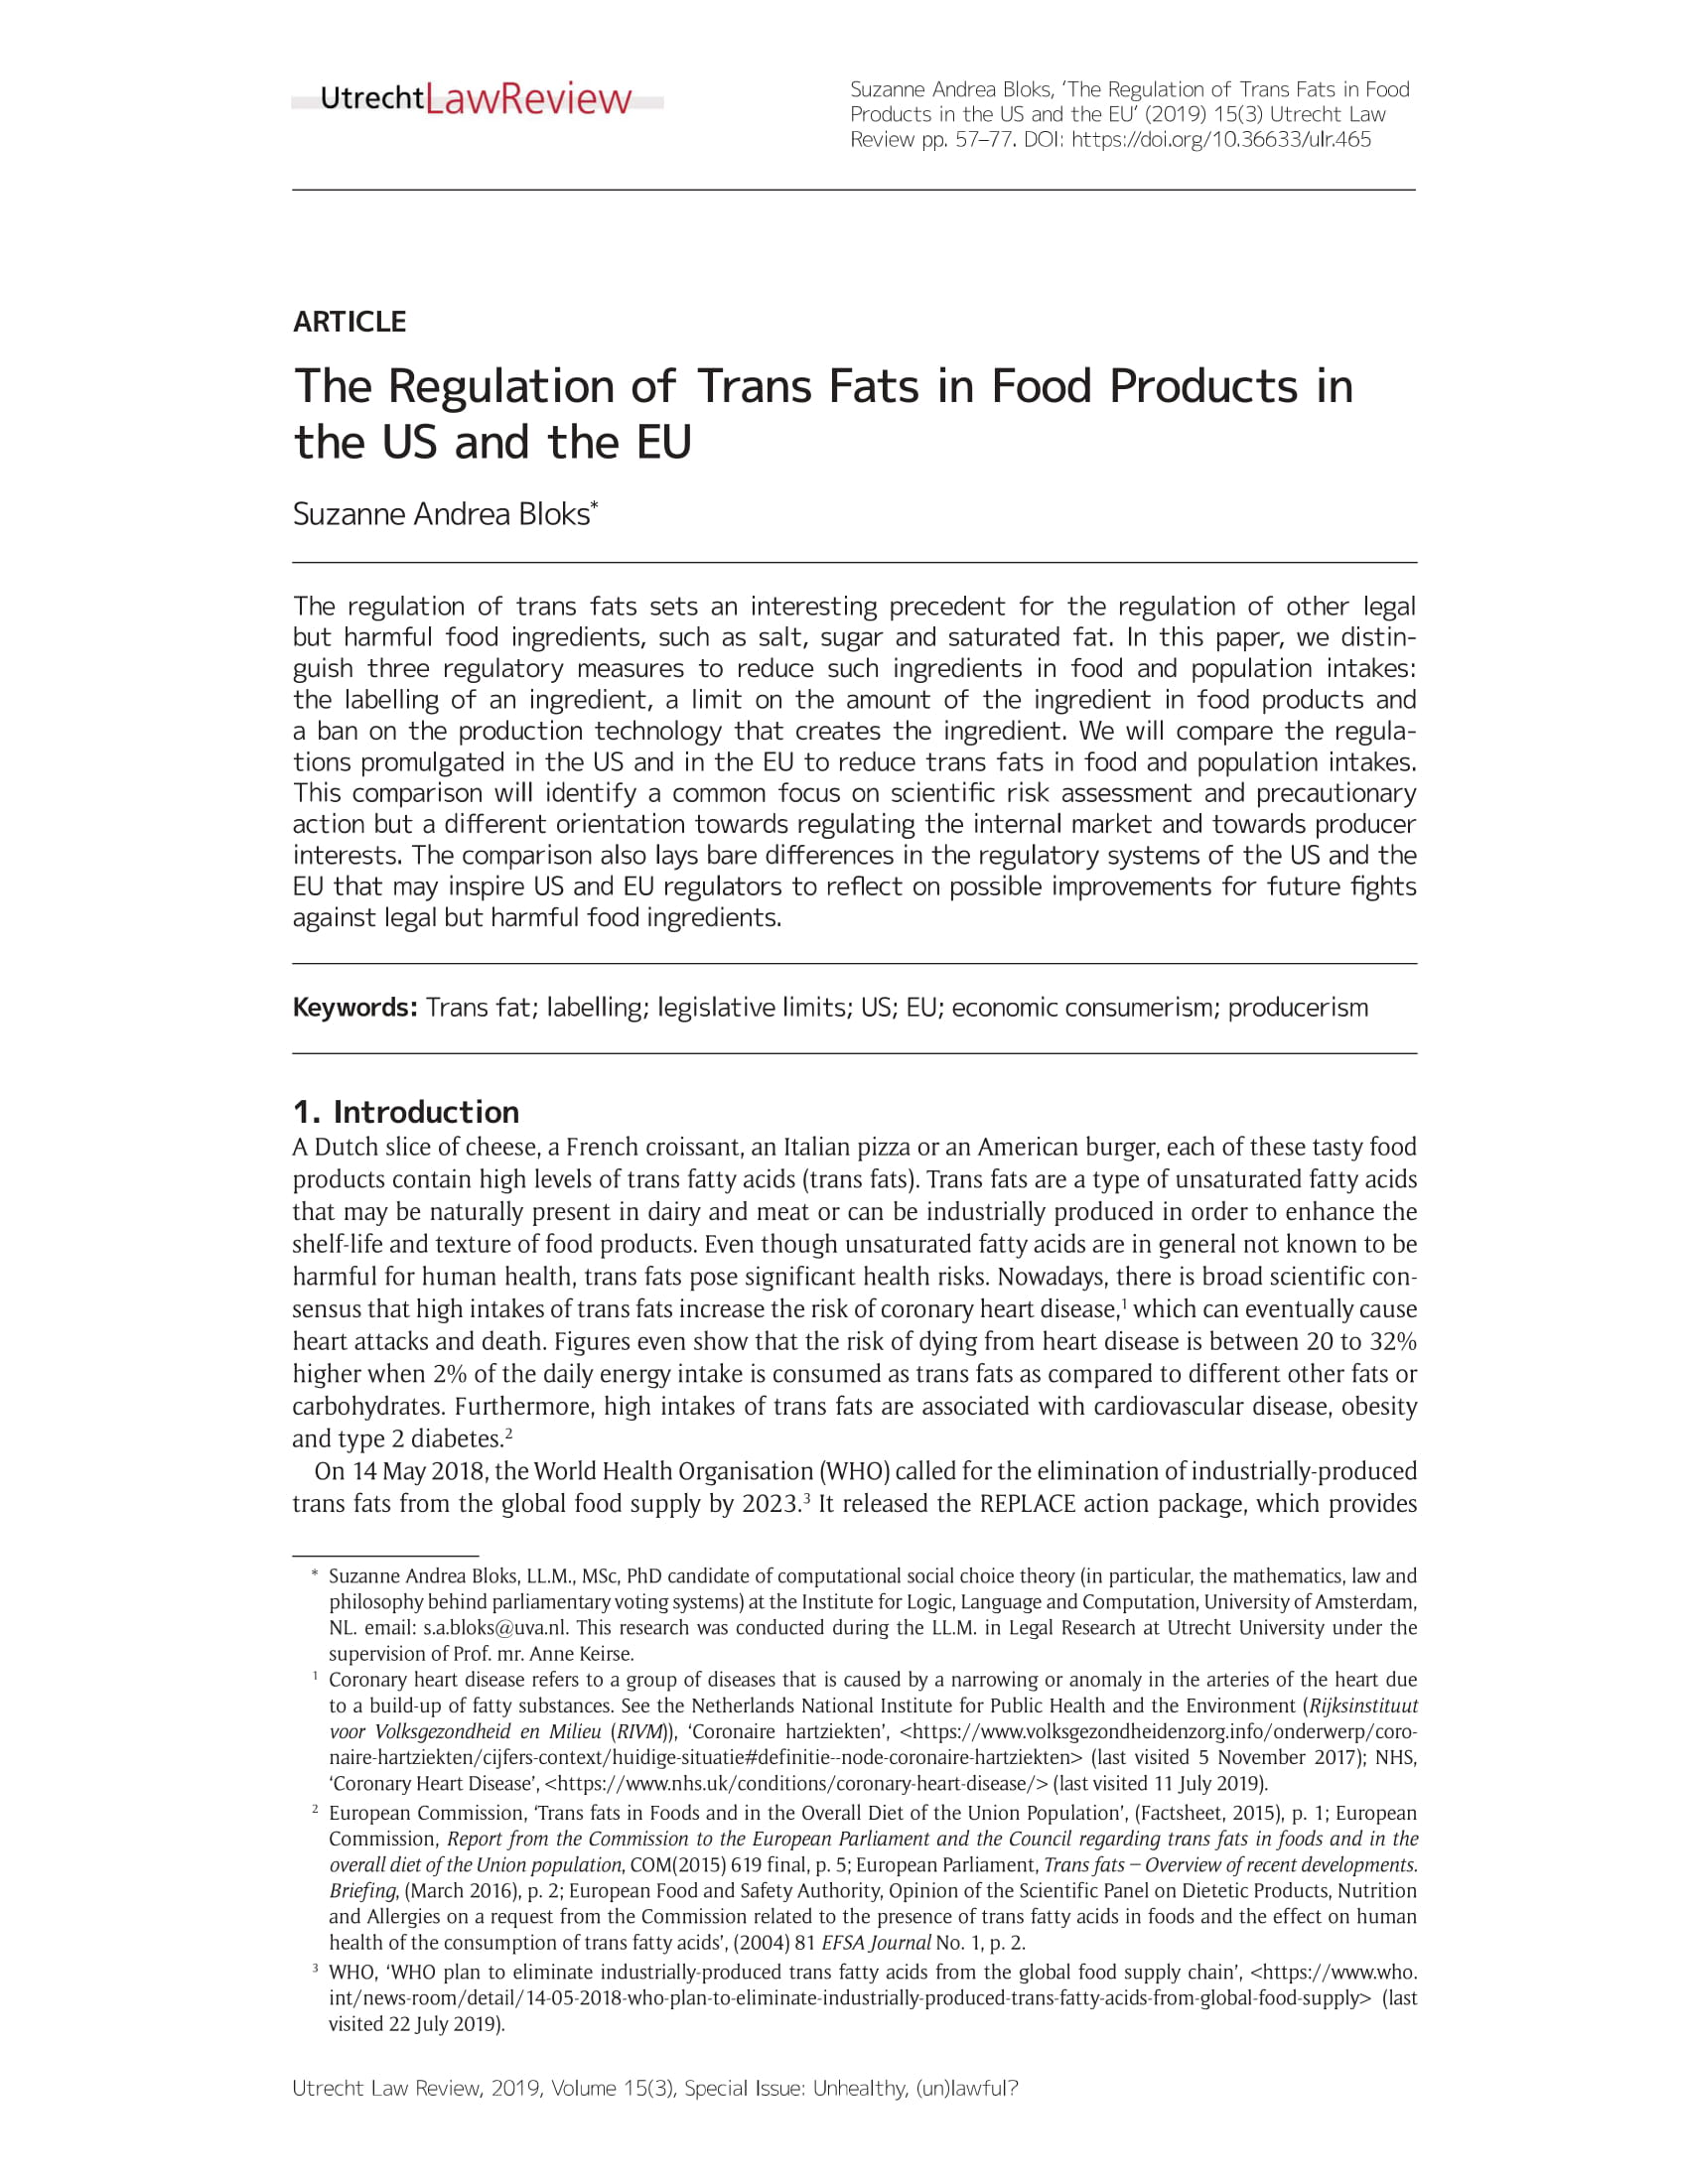 The Regulation of Trans Fats in Food Products in the US and the EU.